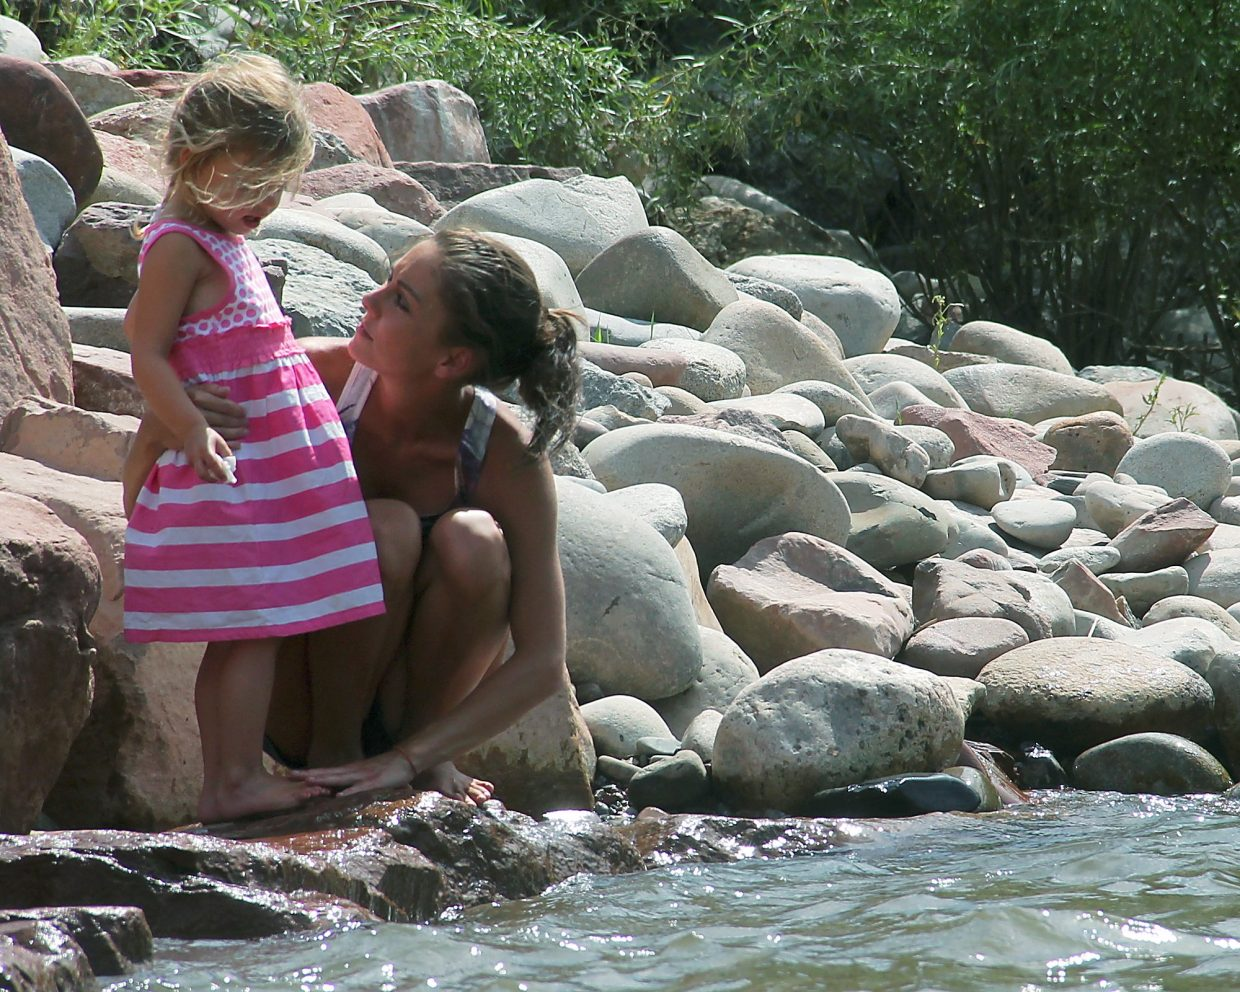 Kim Ziegler and her daughter Keira watch the action at the Wave in Glenwood Springs.